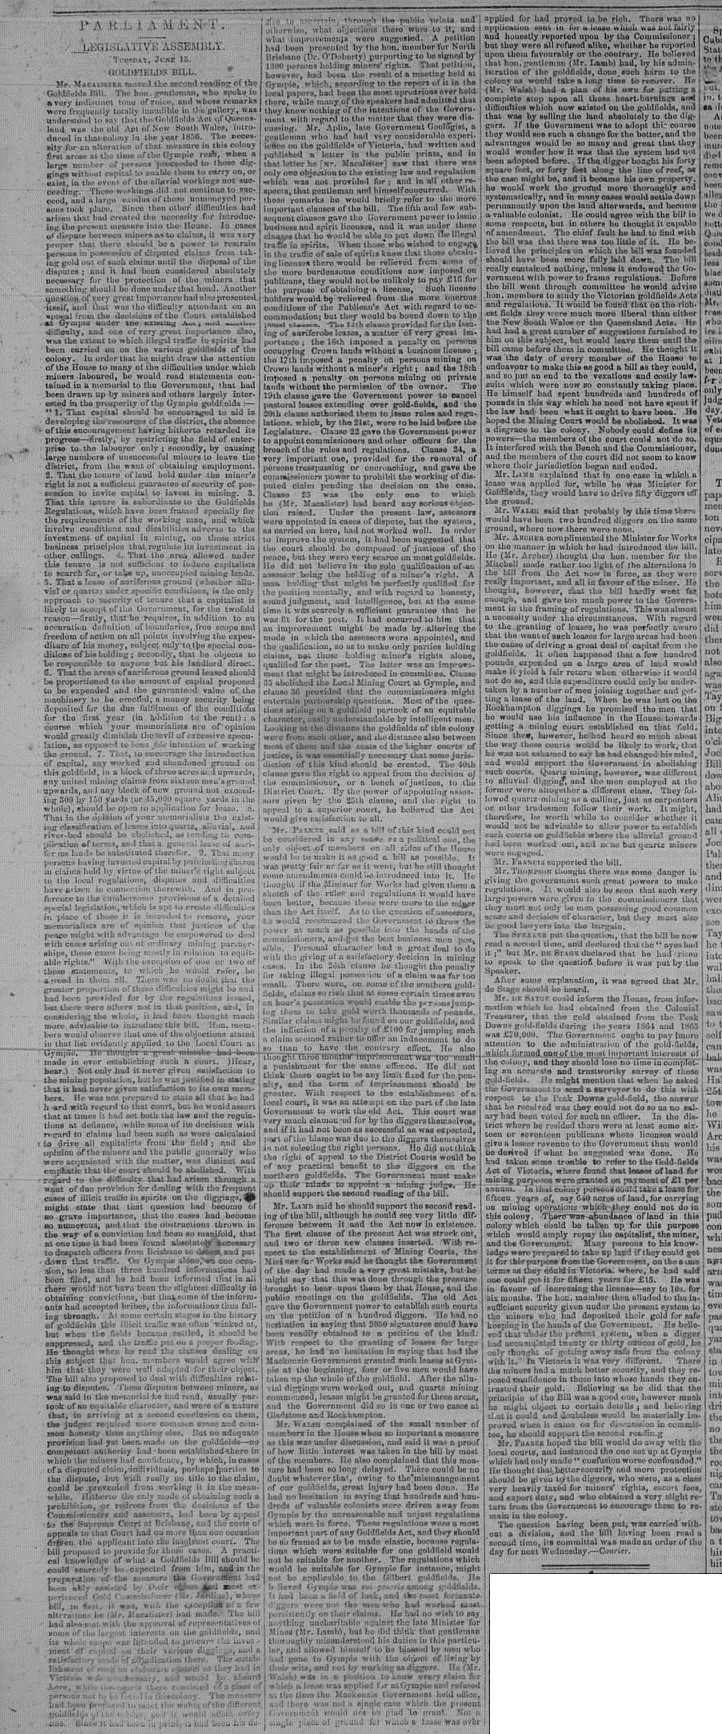 GT Wednesday June 23, 1869 p.3 Goldfields Bill